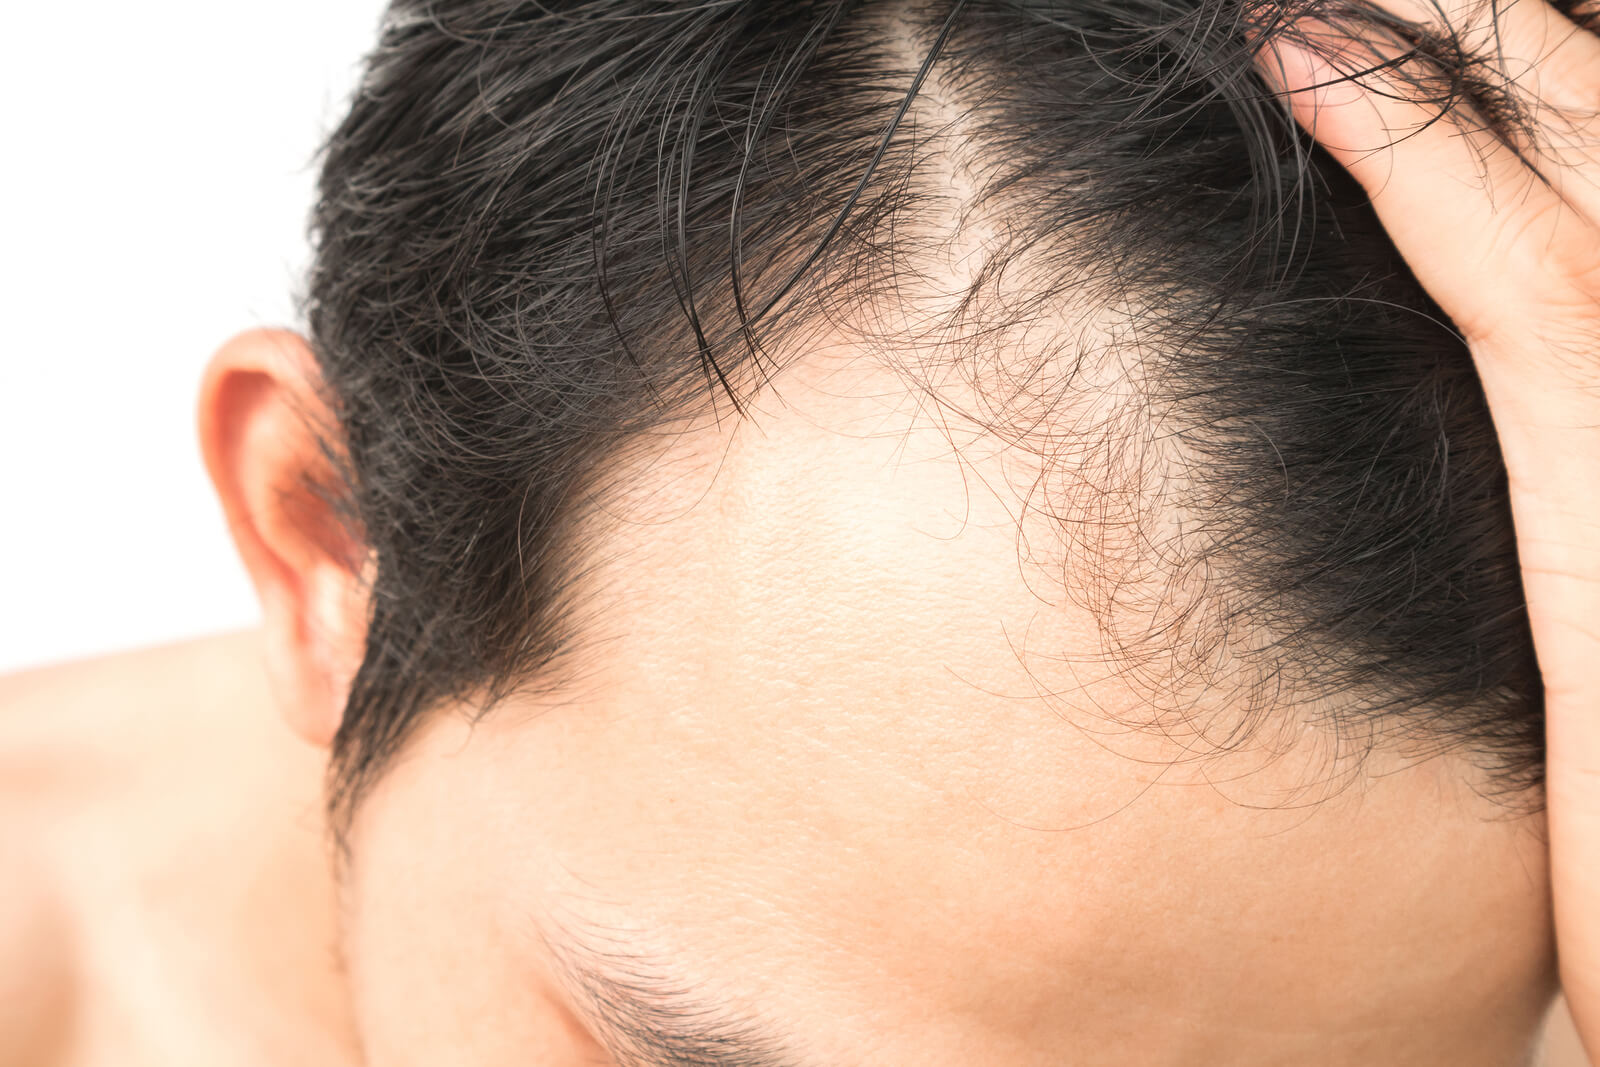 Benefits of the ARTAS Robotic Hair Transplant